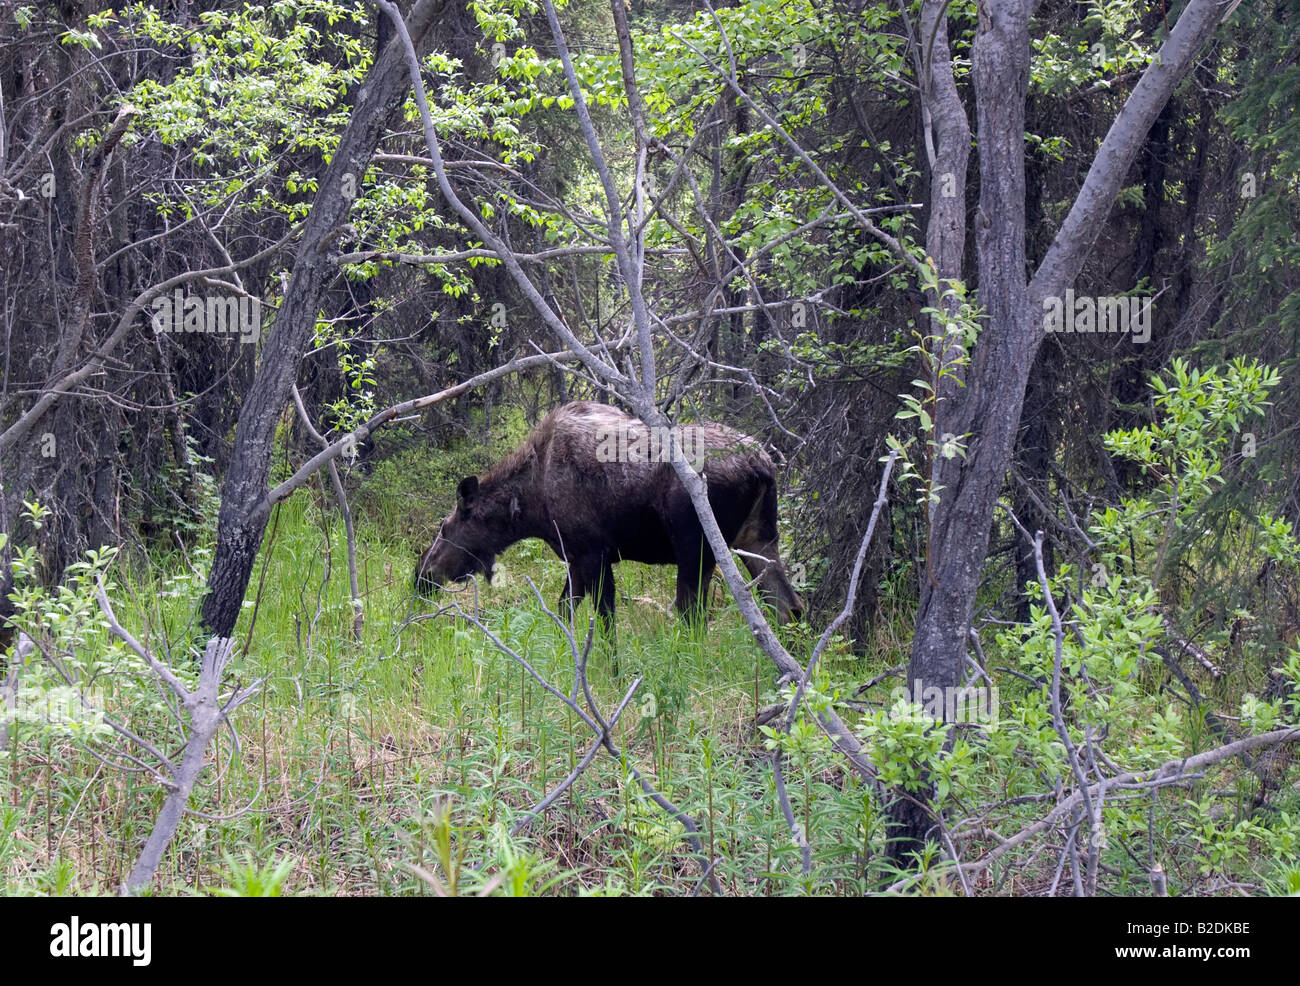 Moose scouting for food in the forest. - Stock Image